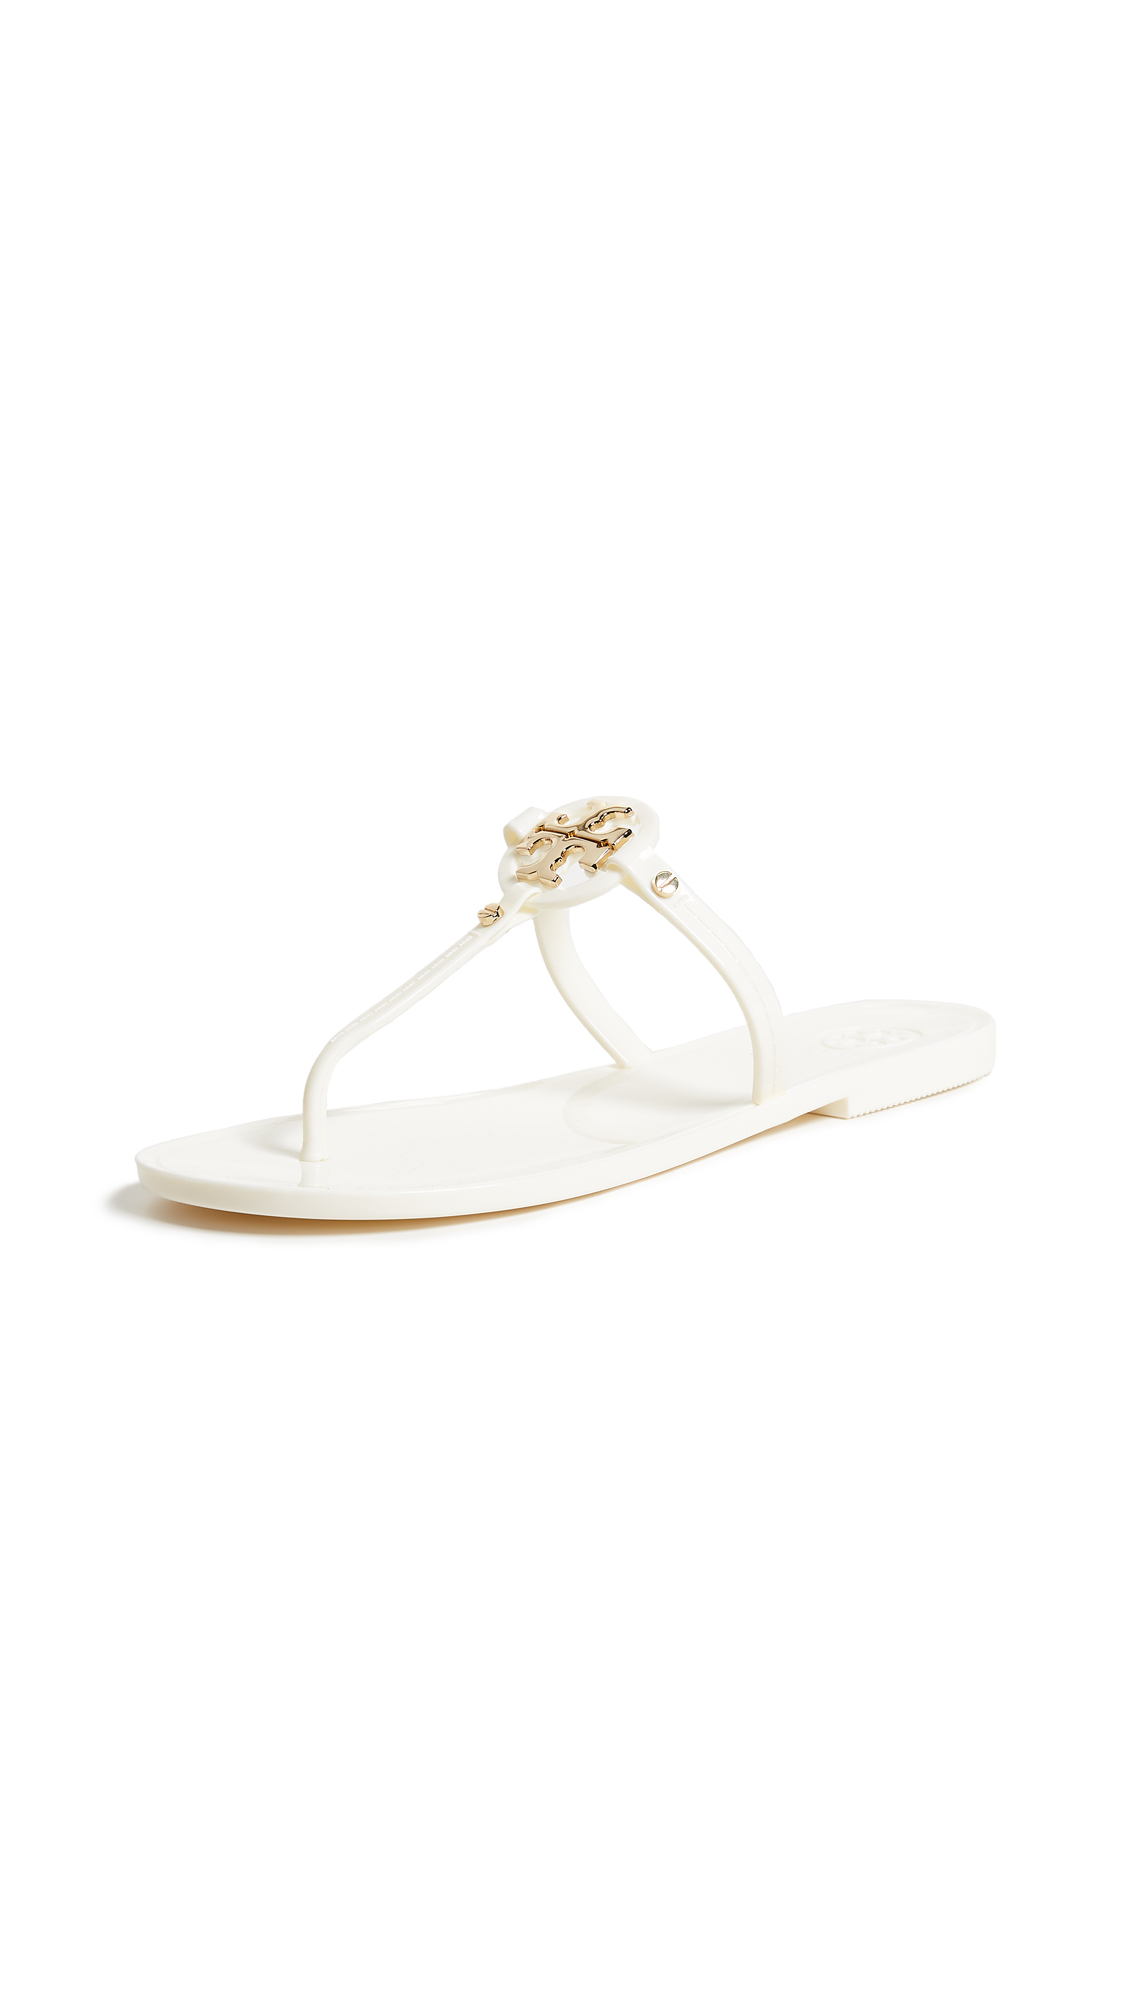 9fe14000fd87fc Tory Burch Mini Miller Jelly Flat Thong Sandals In Ivory